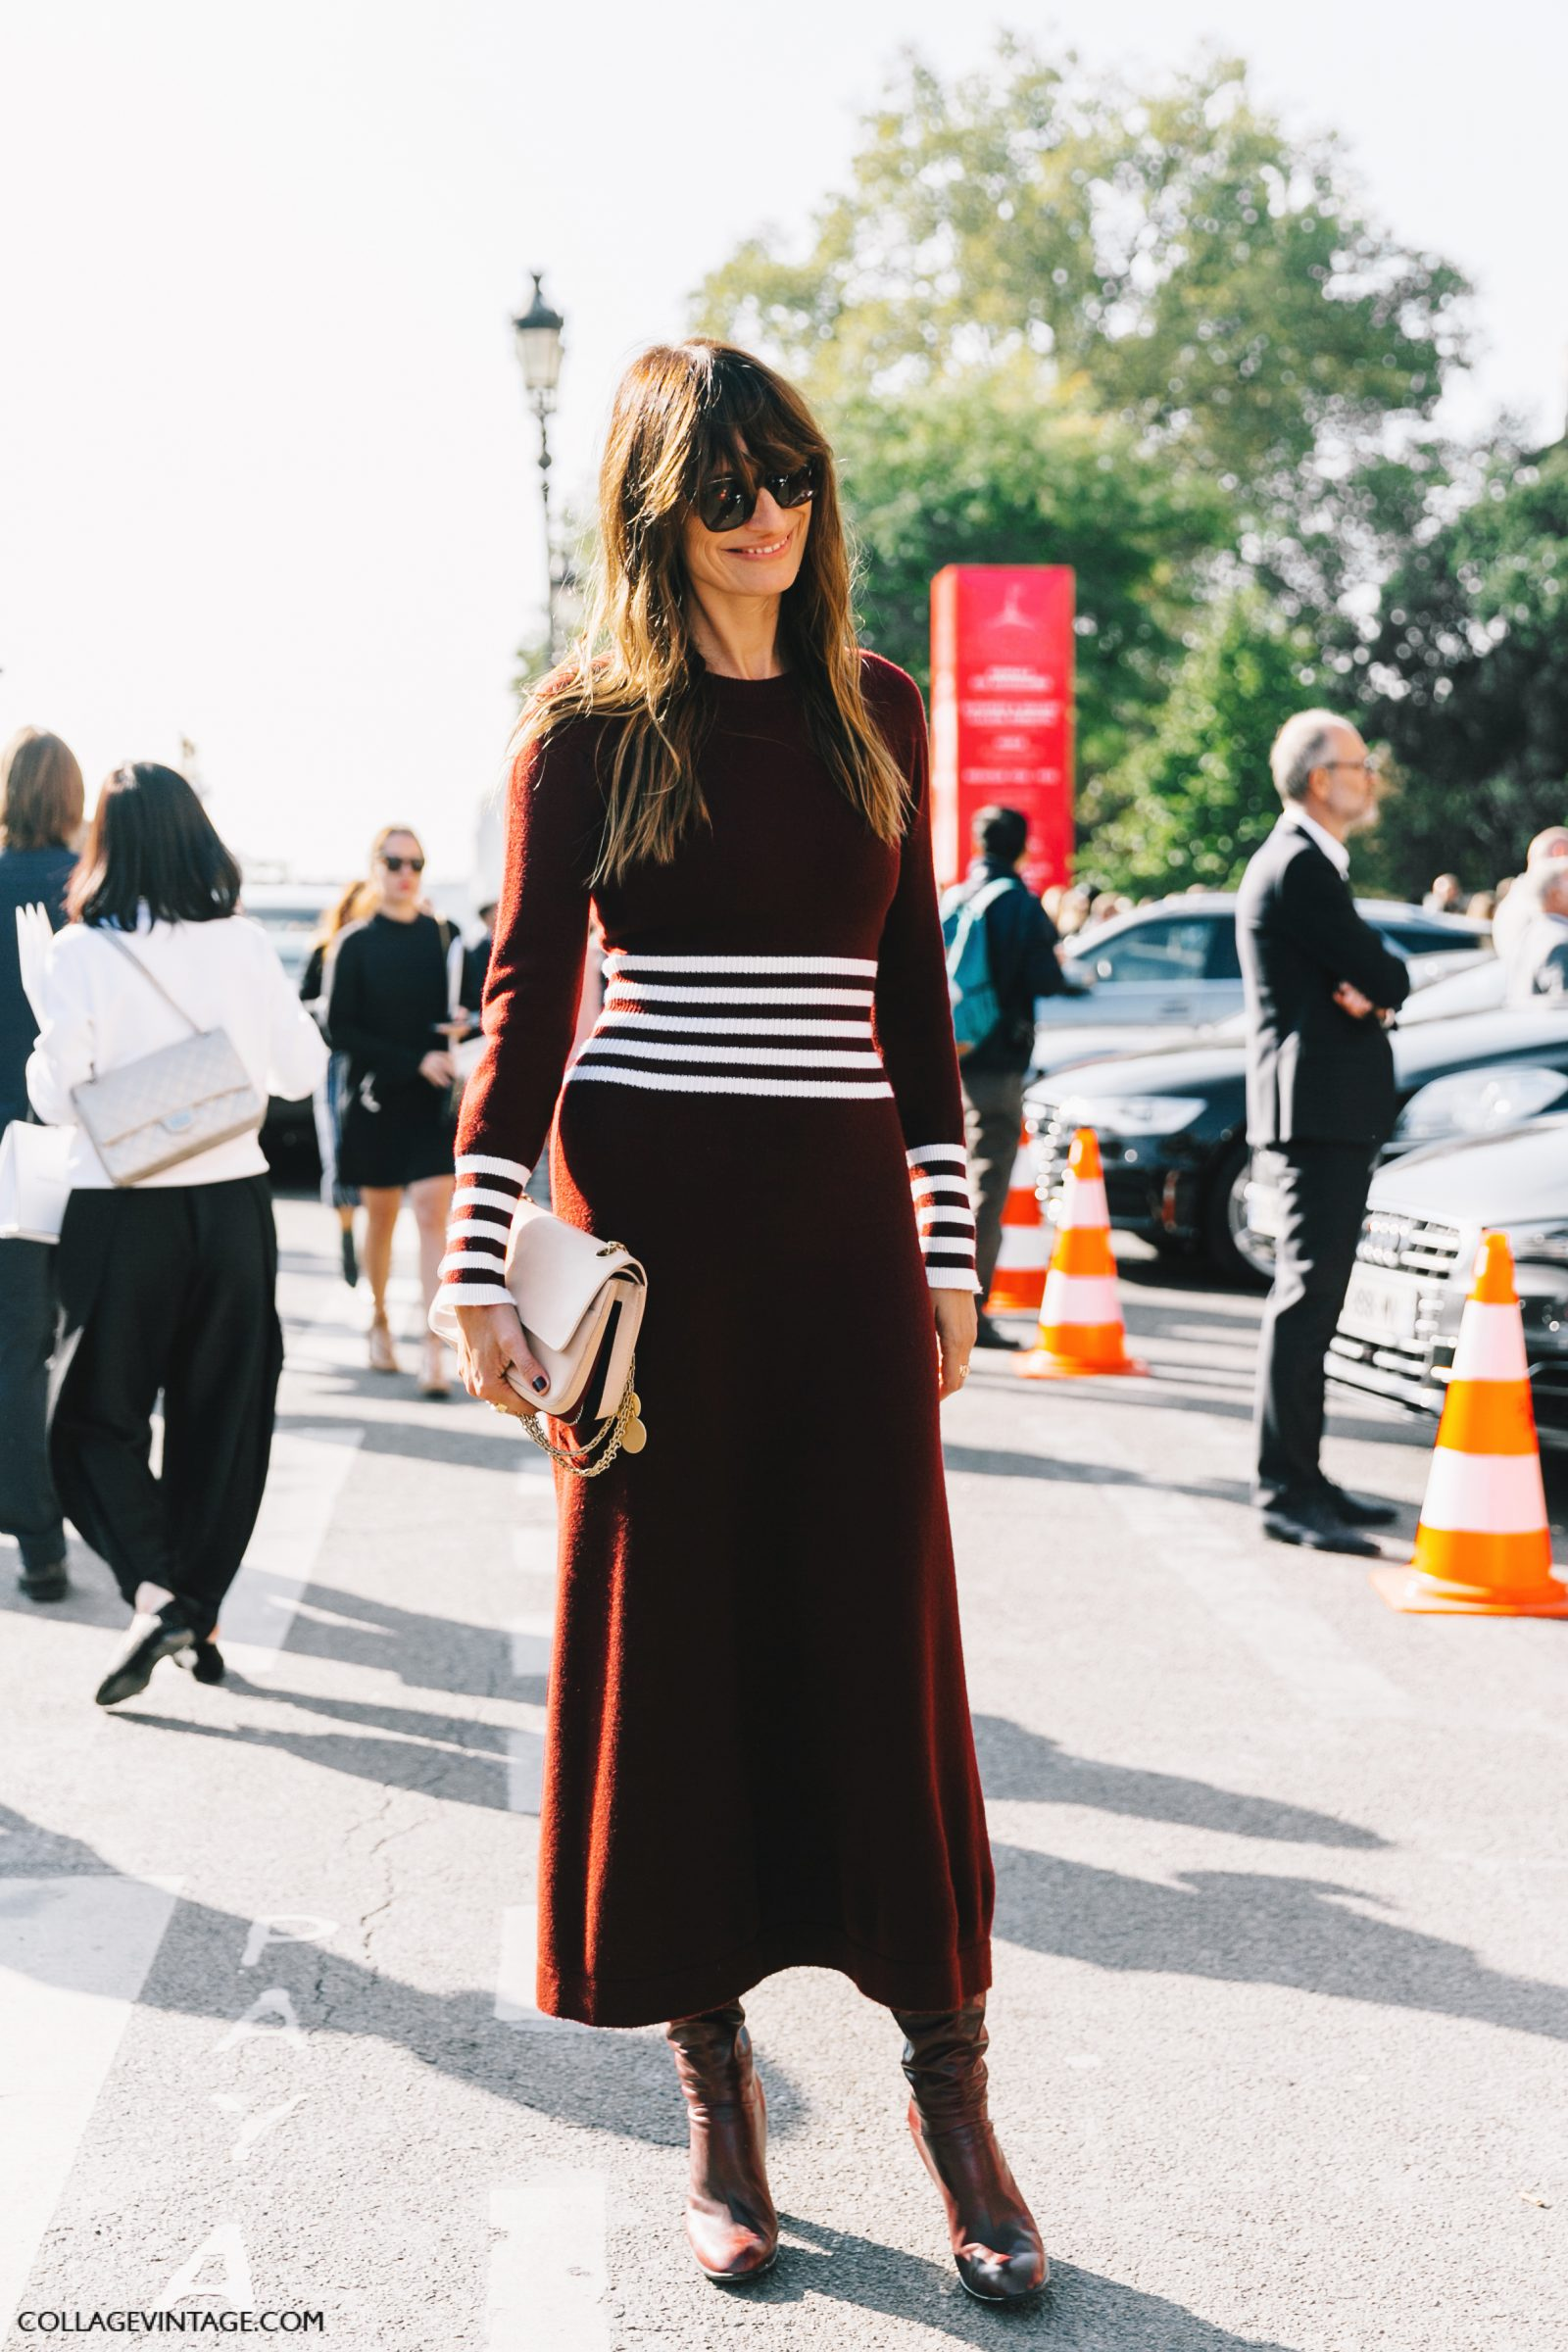 pfw-paris_fashion_week_ss17-street_style-outfits-collage_vintage-chanel-ellery-58